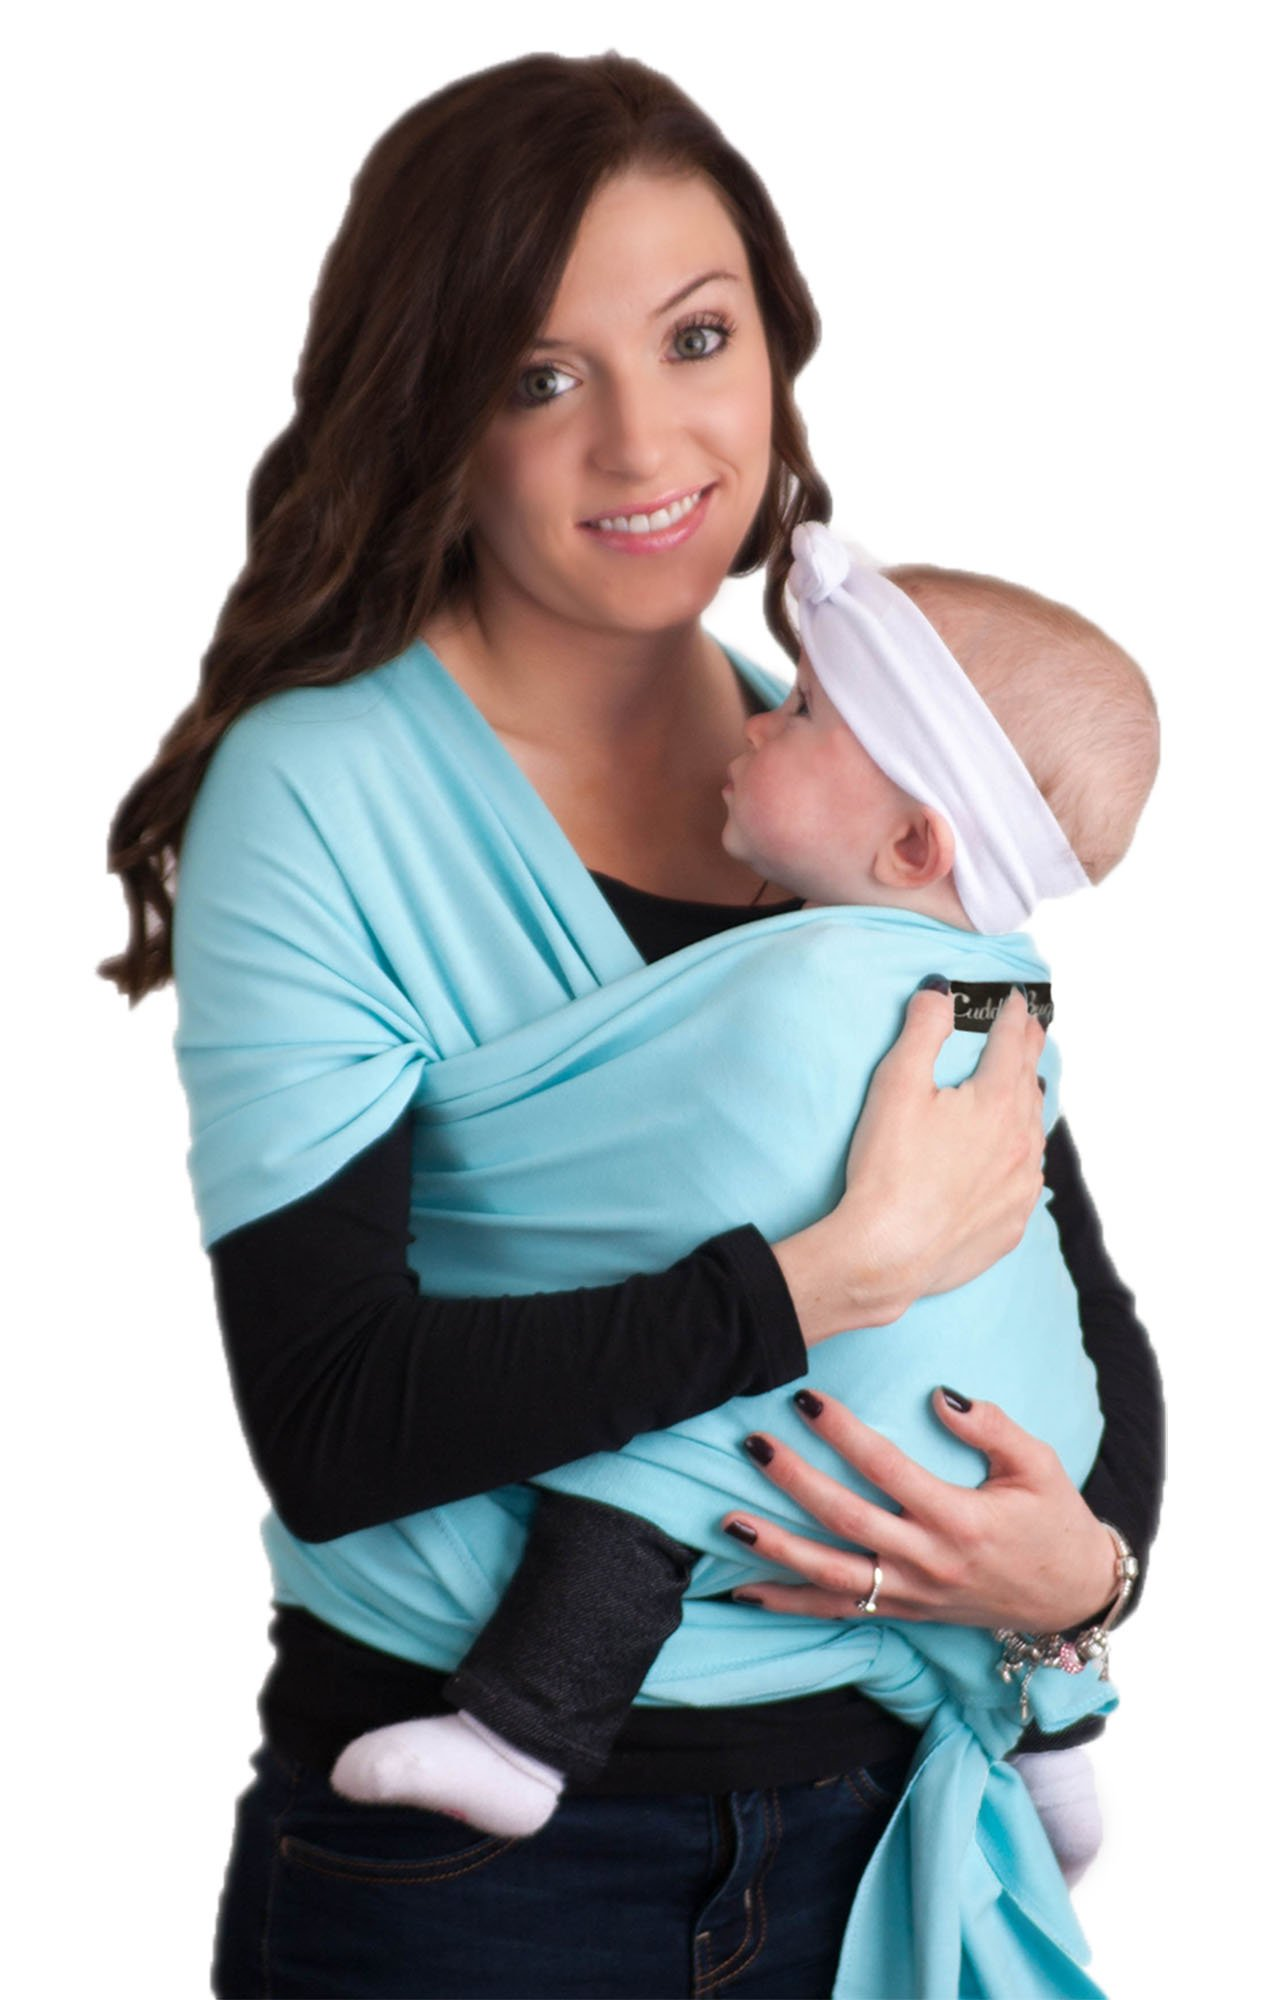 0baf59d7dce Get Quotations · Baby Wrap - Best Baby Carrier by CuddleBug - Available in  9 Colors